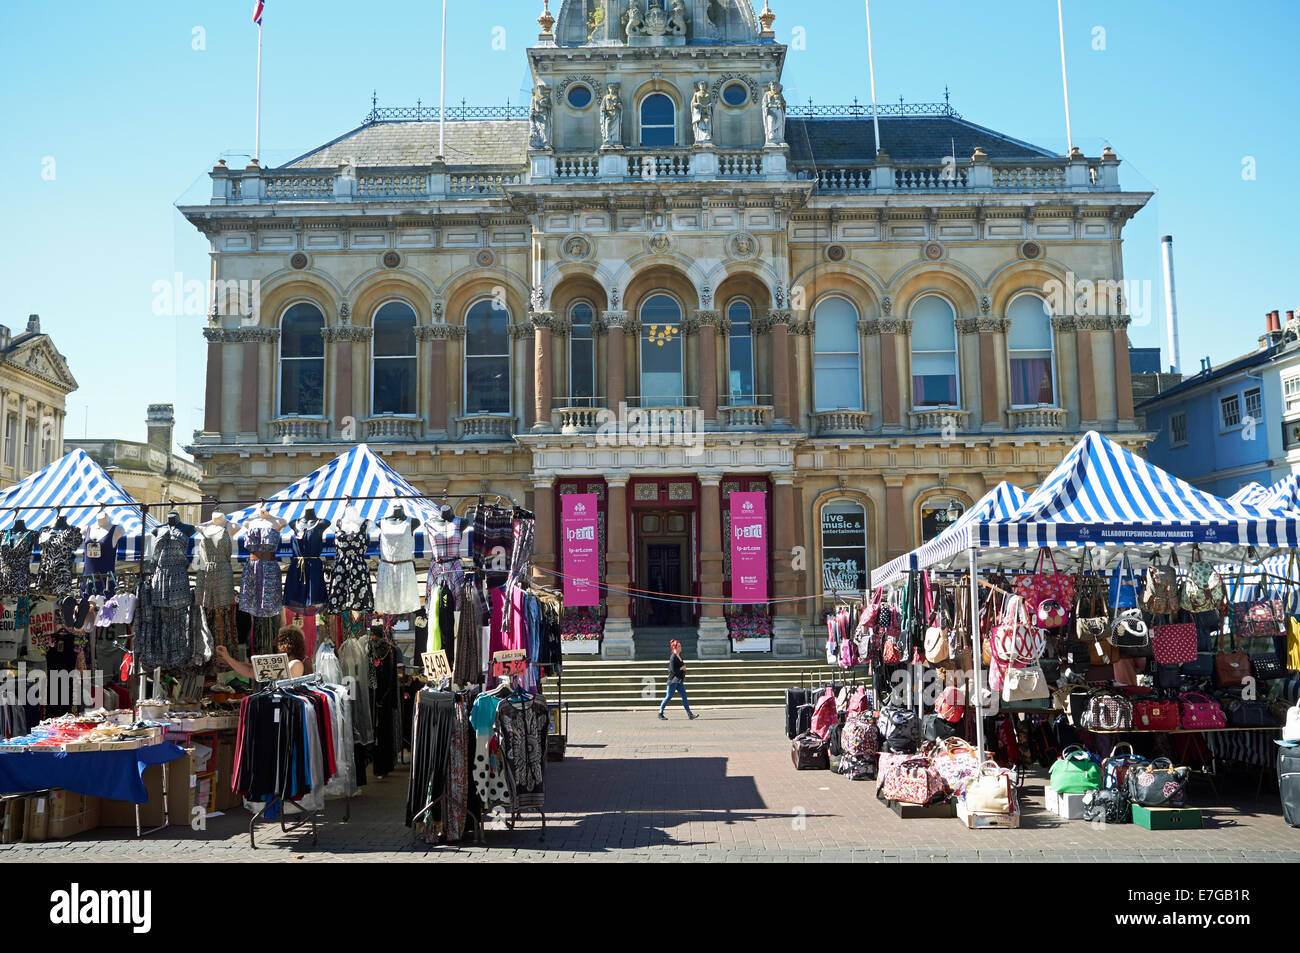 Ipswich Market business Cornhill Corn Hill stalls - Stock Image